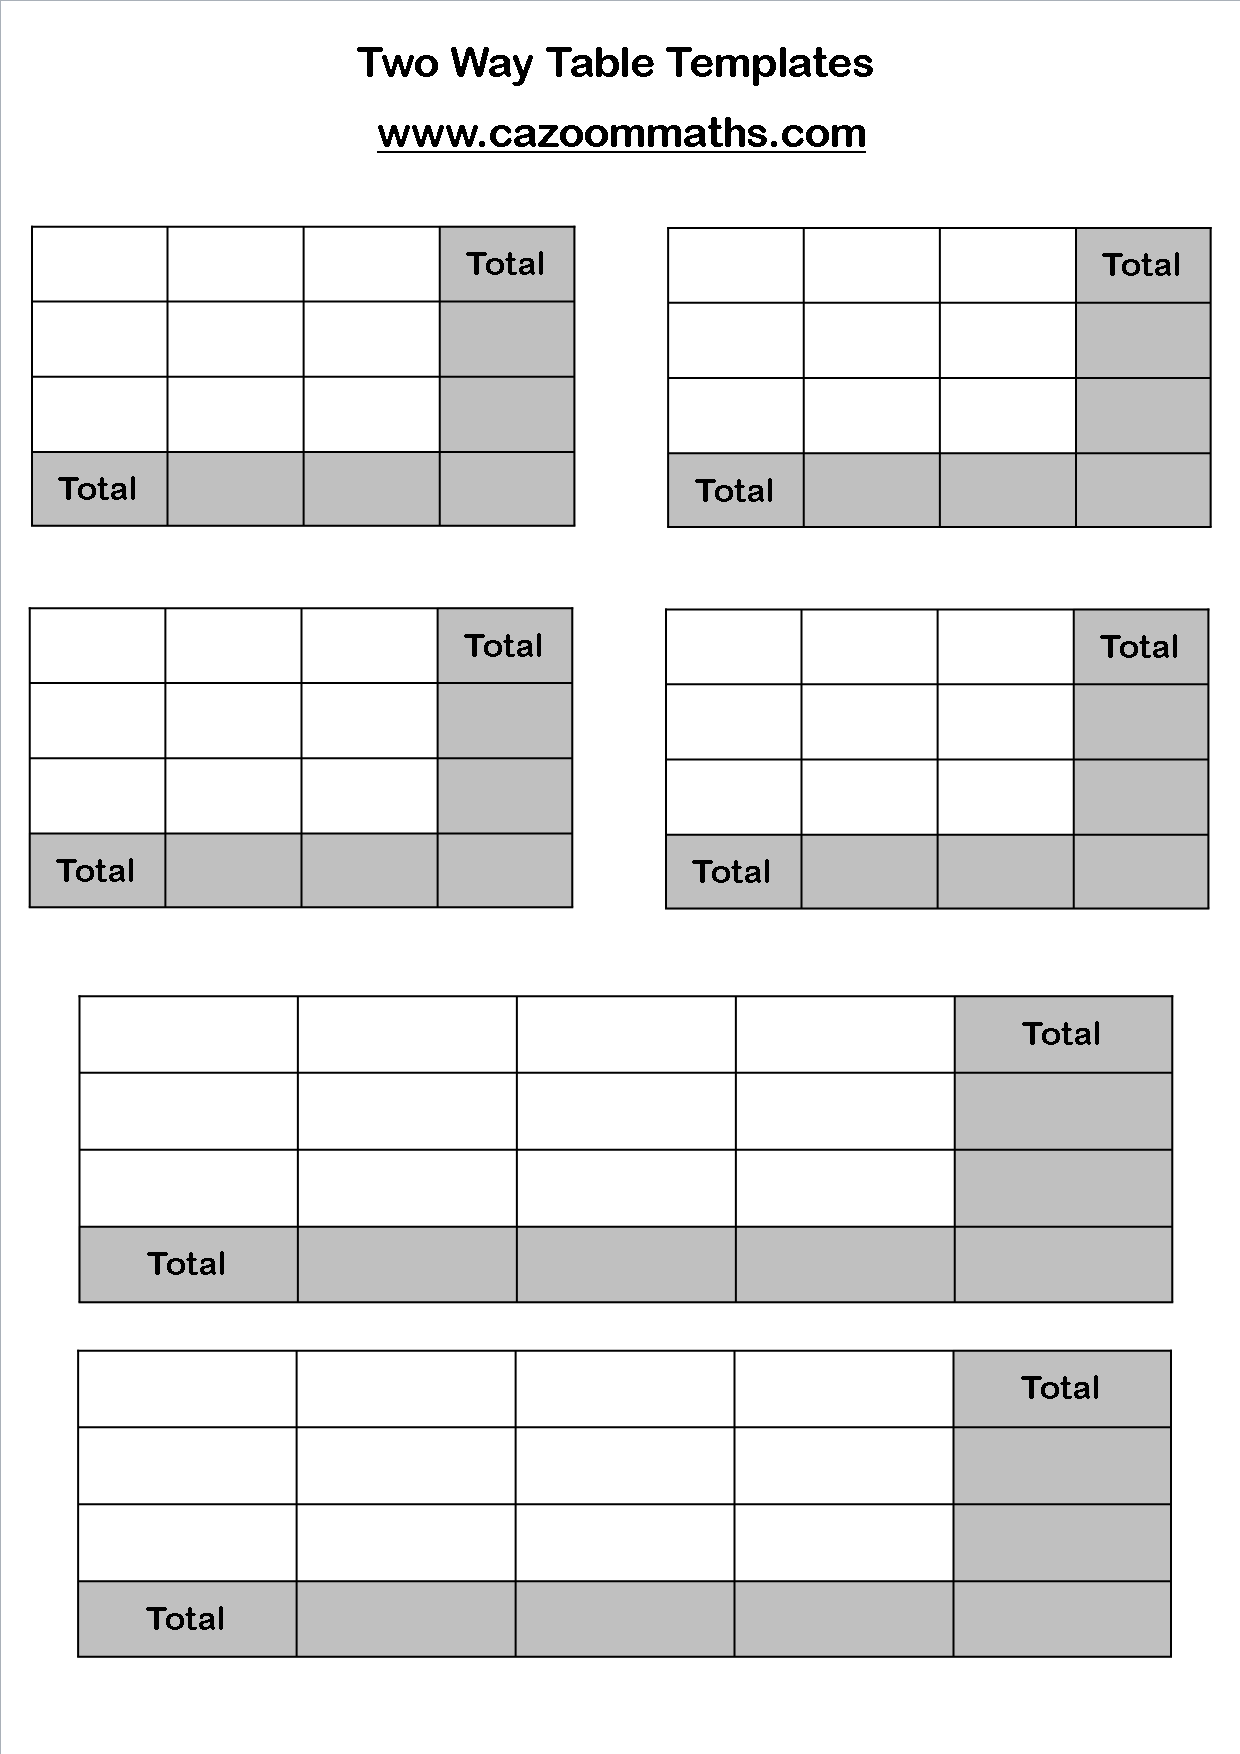 Two-Way Tables and Pictograms | Cazoom Maths Worksheets